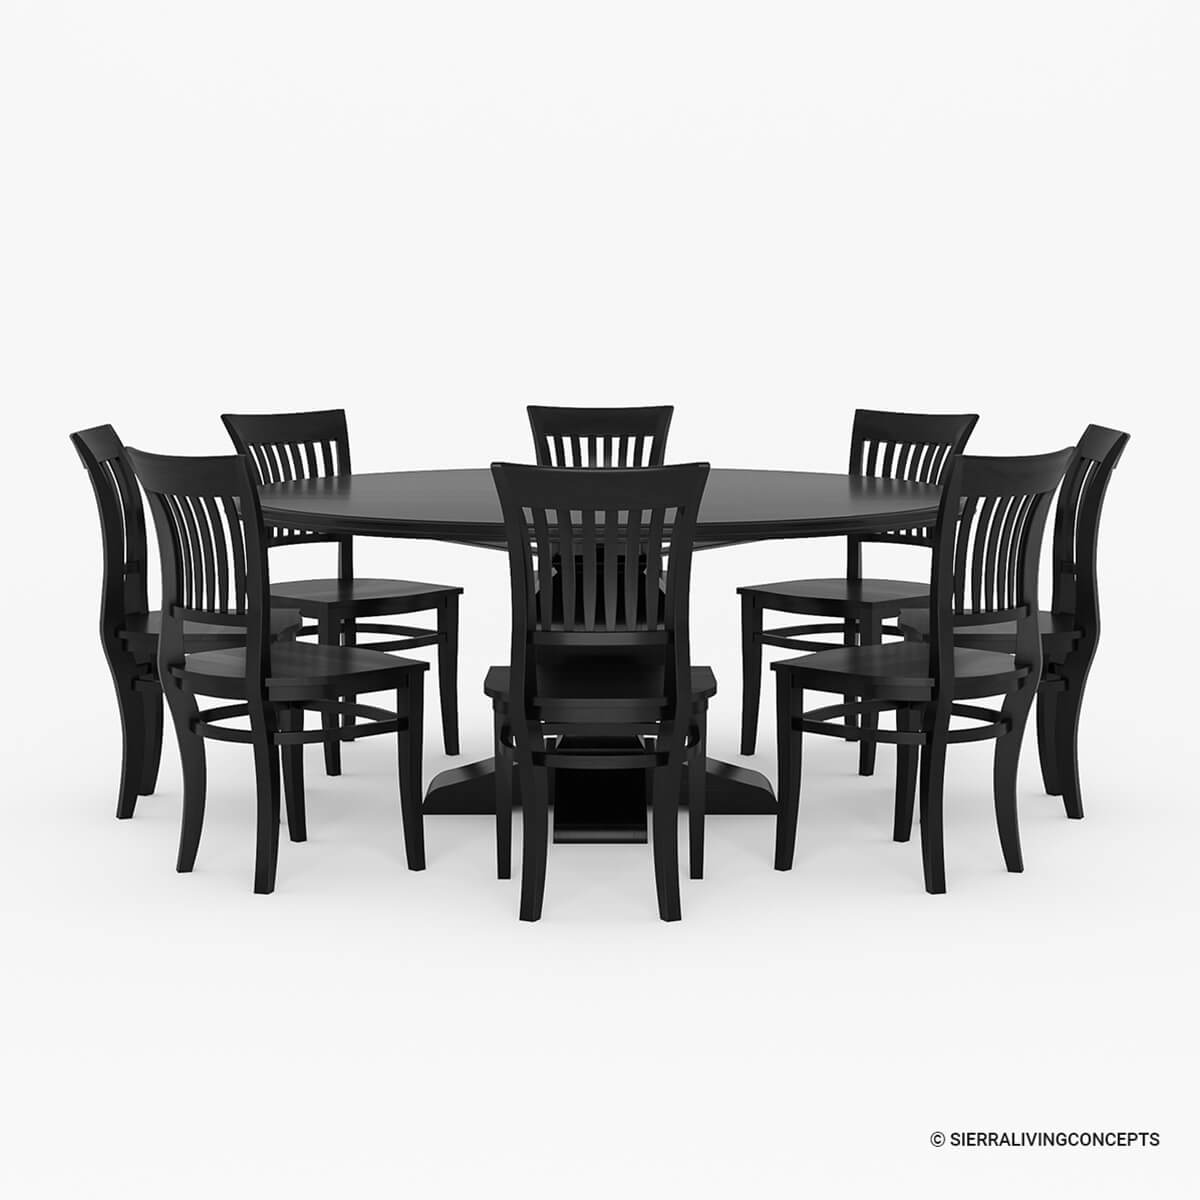 Rustic Solid Wood Large Square Dining Table Chair Set: Sierra Nevada Large Round Rustic Solid Wood Dining Table